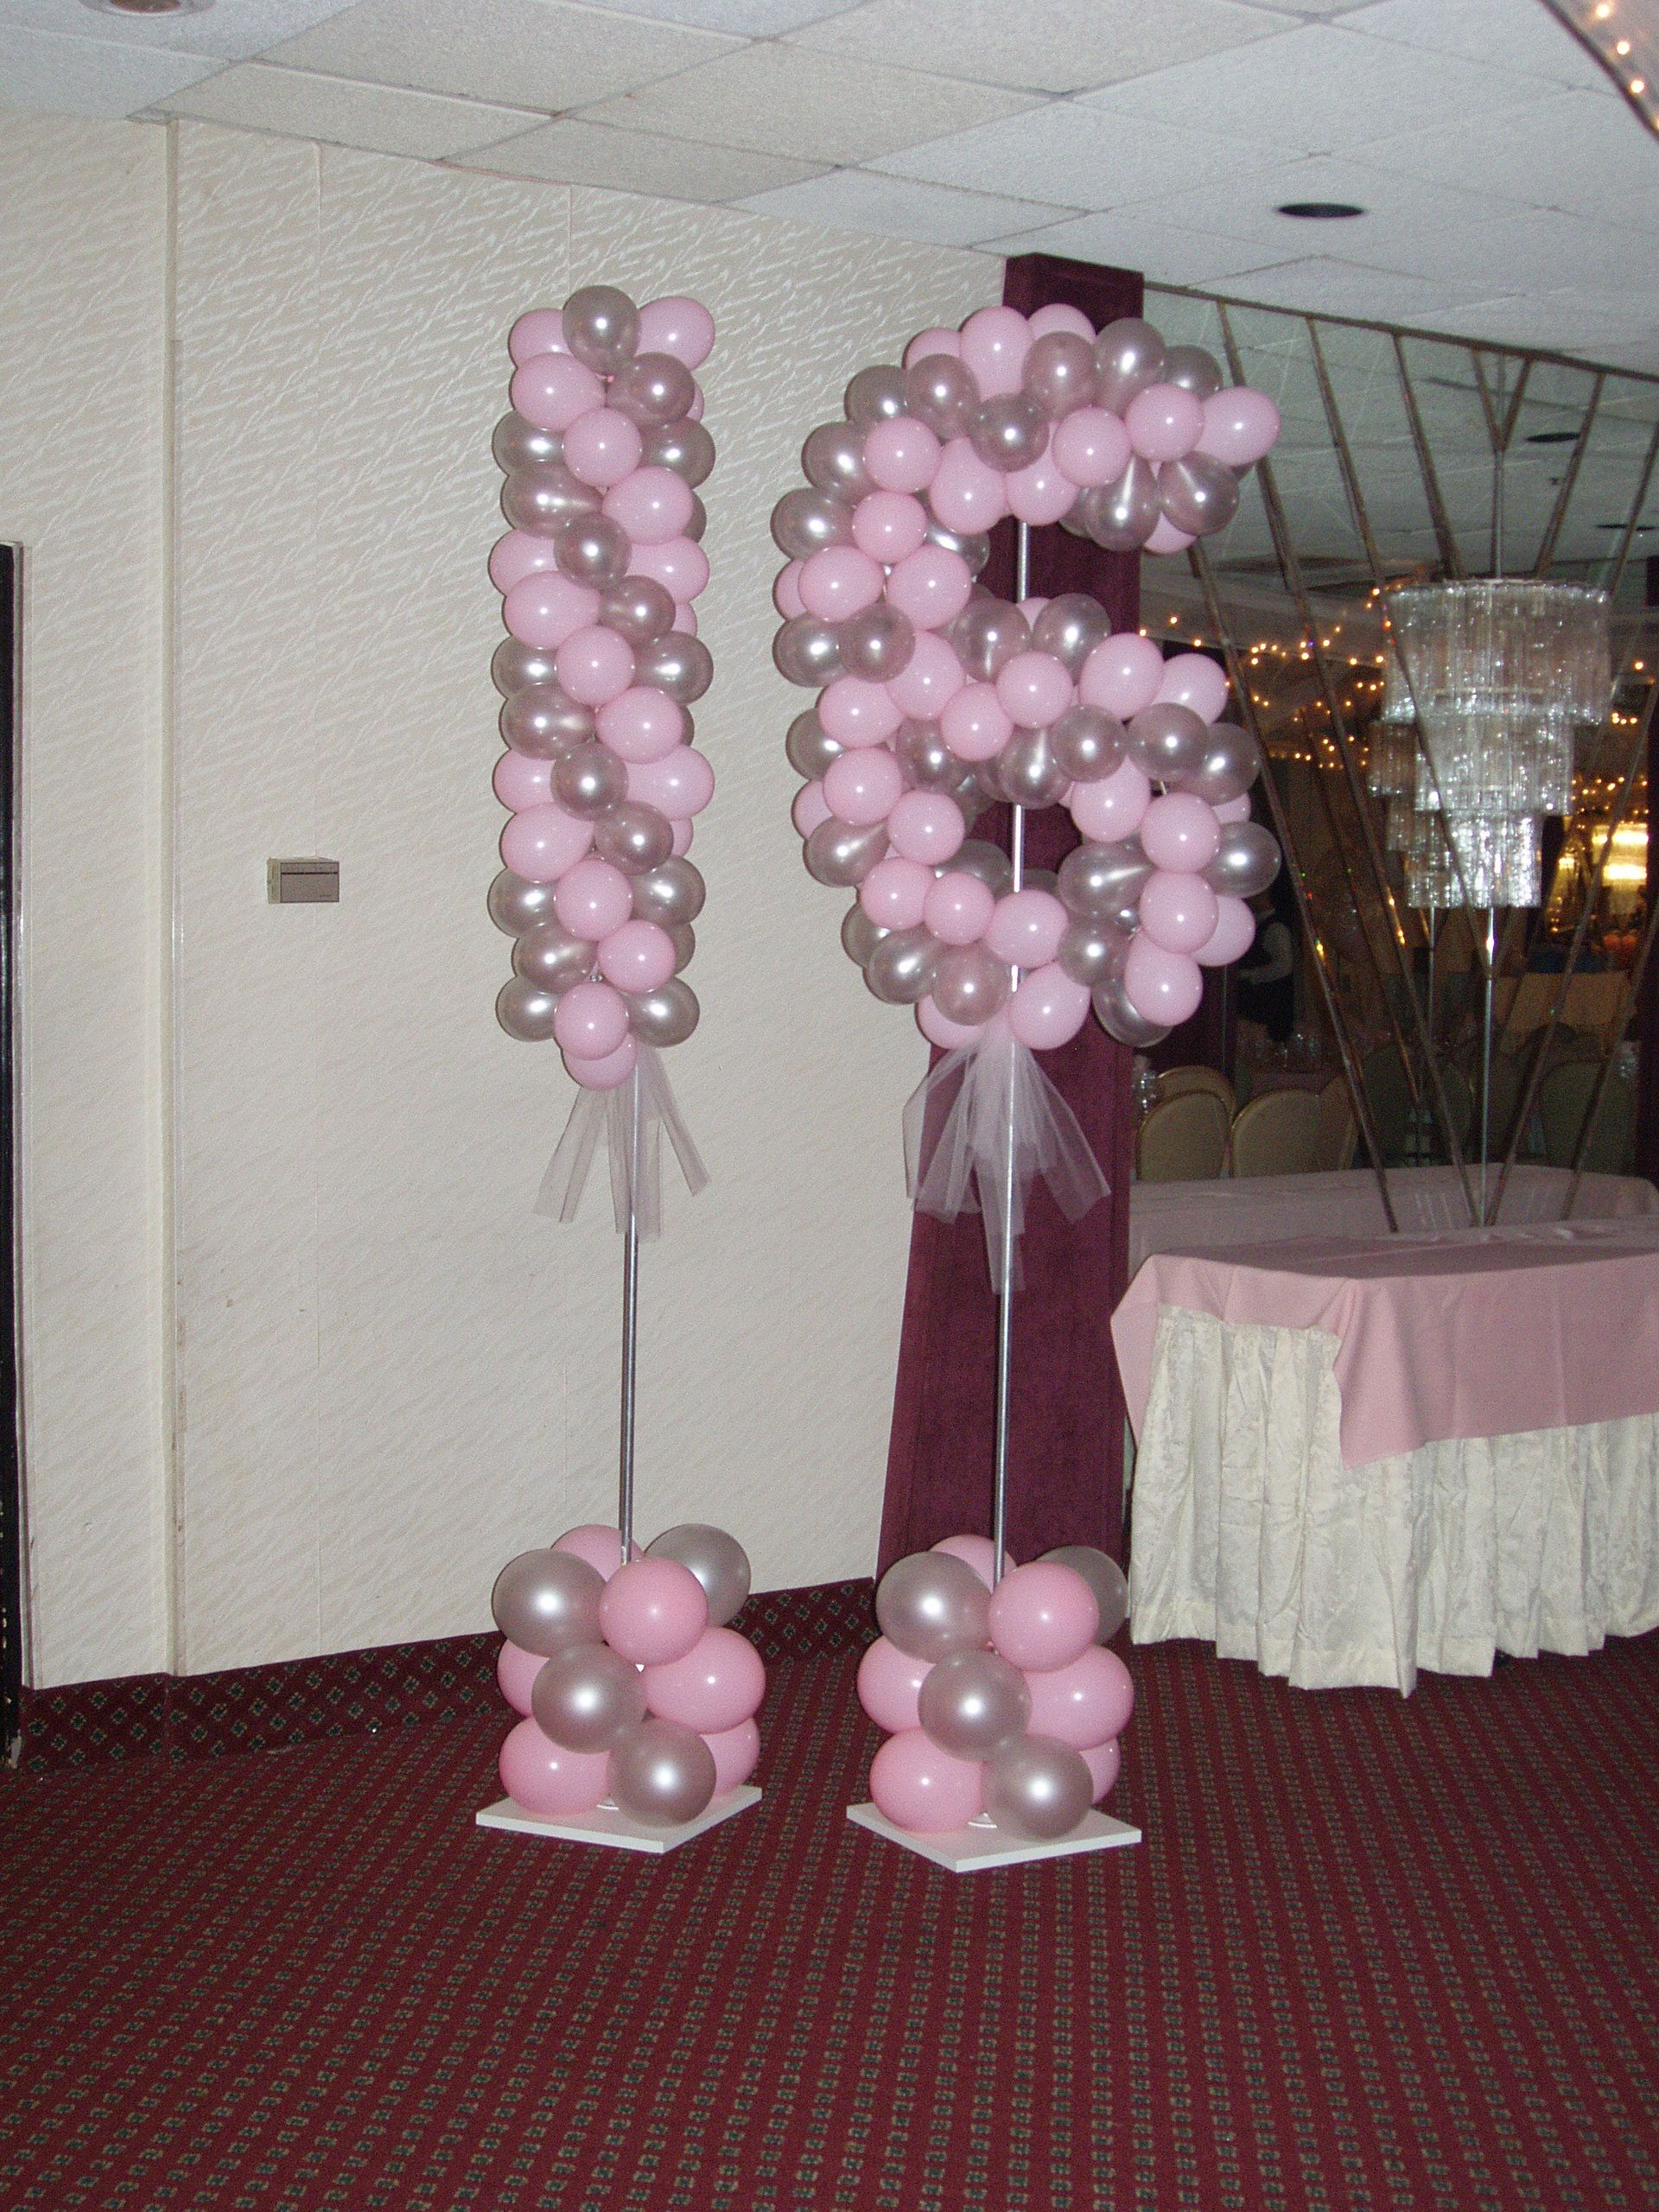 15 Balloons Quince Ideas In 2019 Sweet 16 Decorations Sweet 16